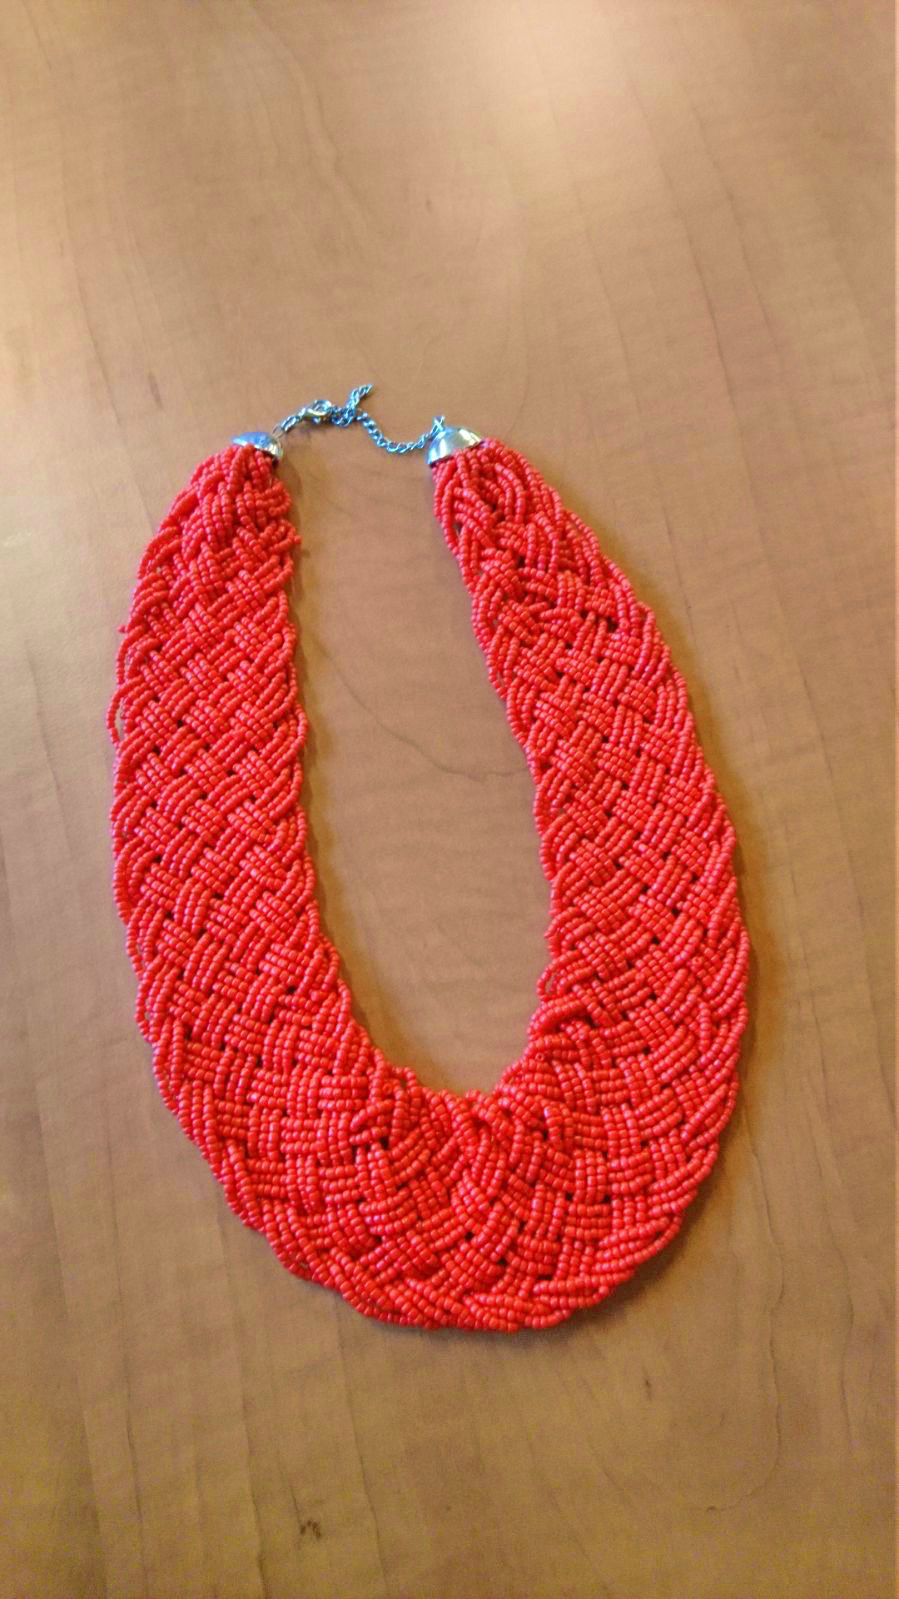 Handmade red necklace